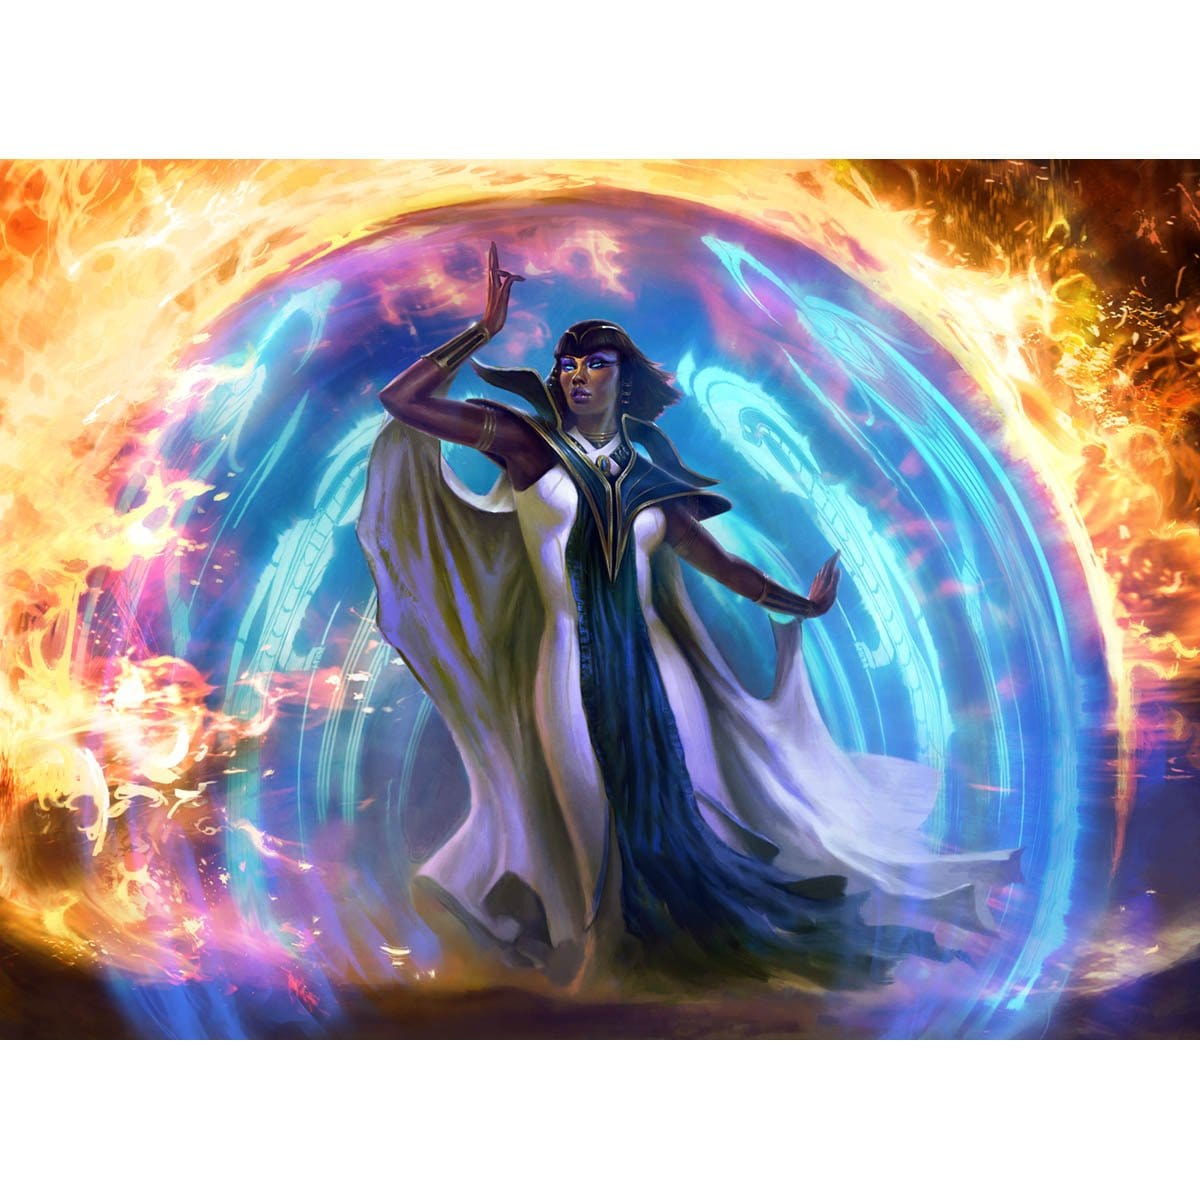 Cancel Print - Print - Original Magic Art - Accessories for Magic the Gathering and other card games